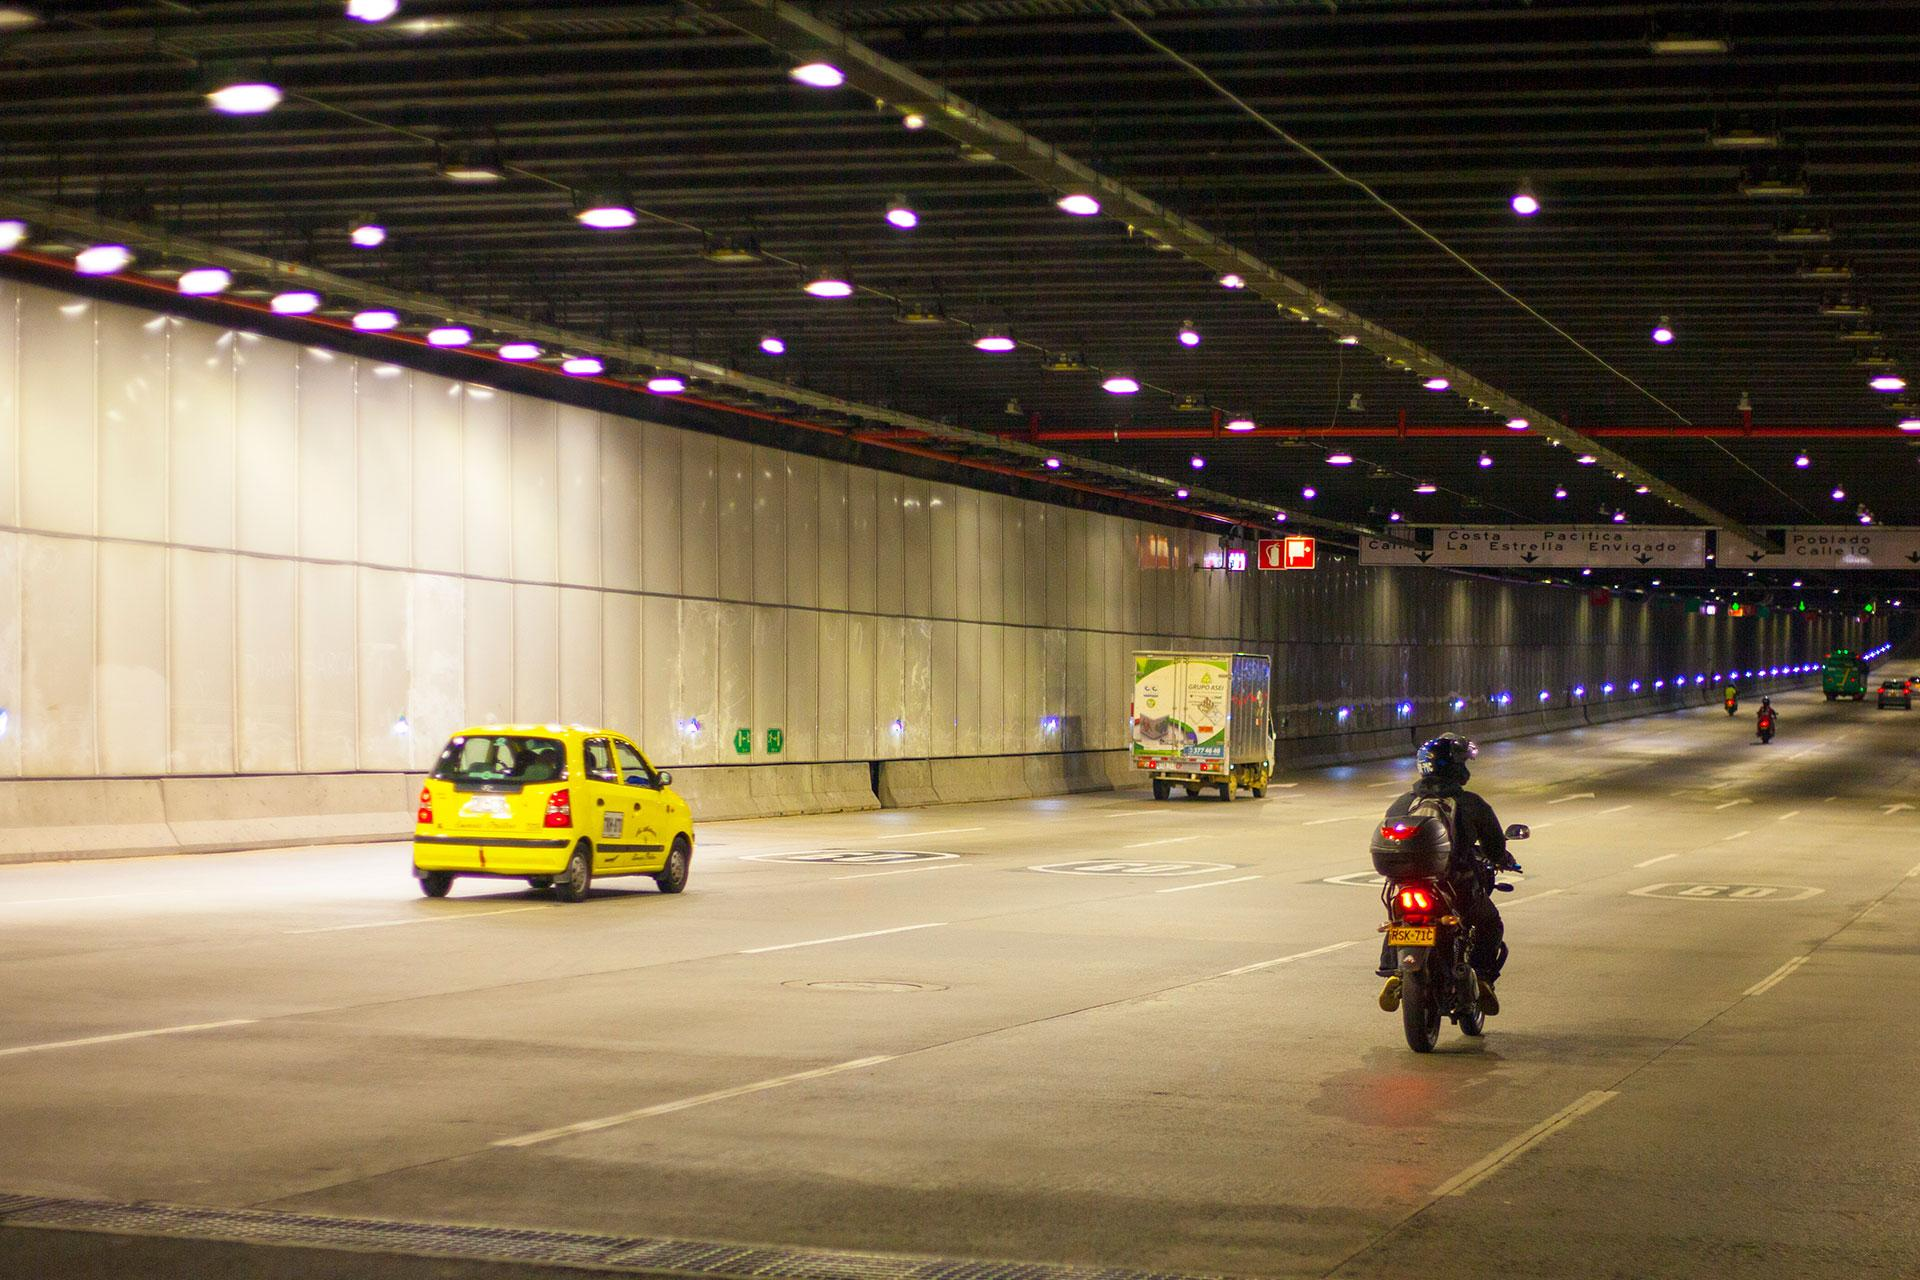 GL2 Compact ensures excellent visibility and visual comfort in this busy tunnel